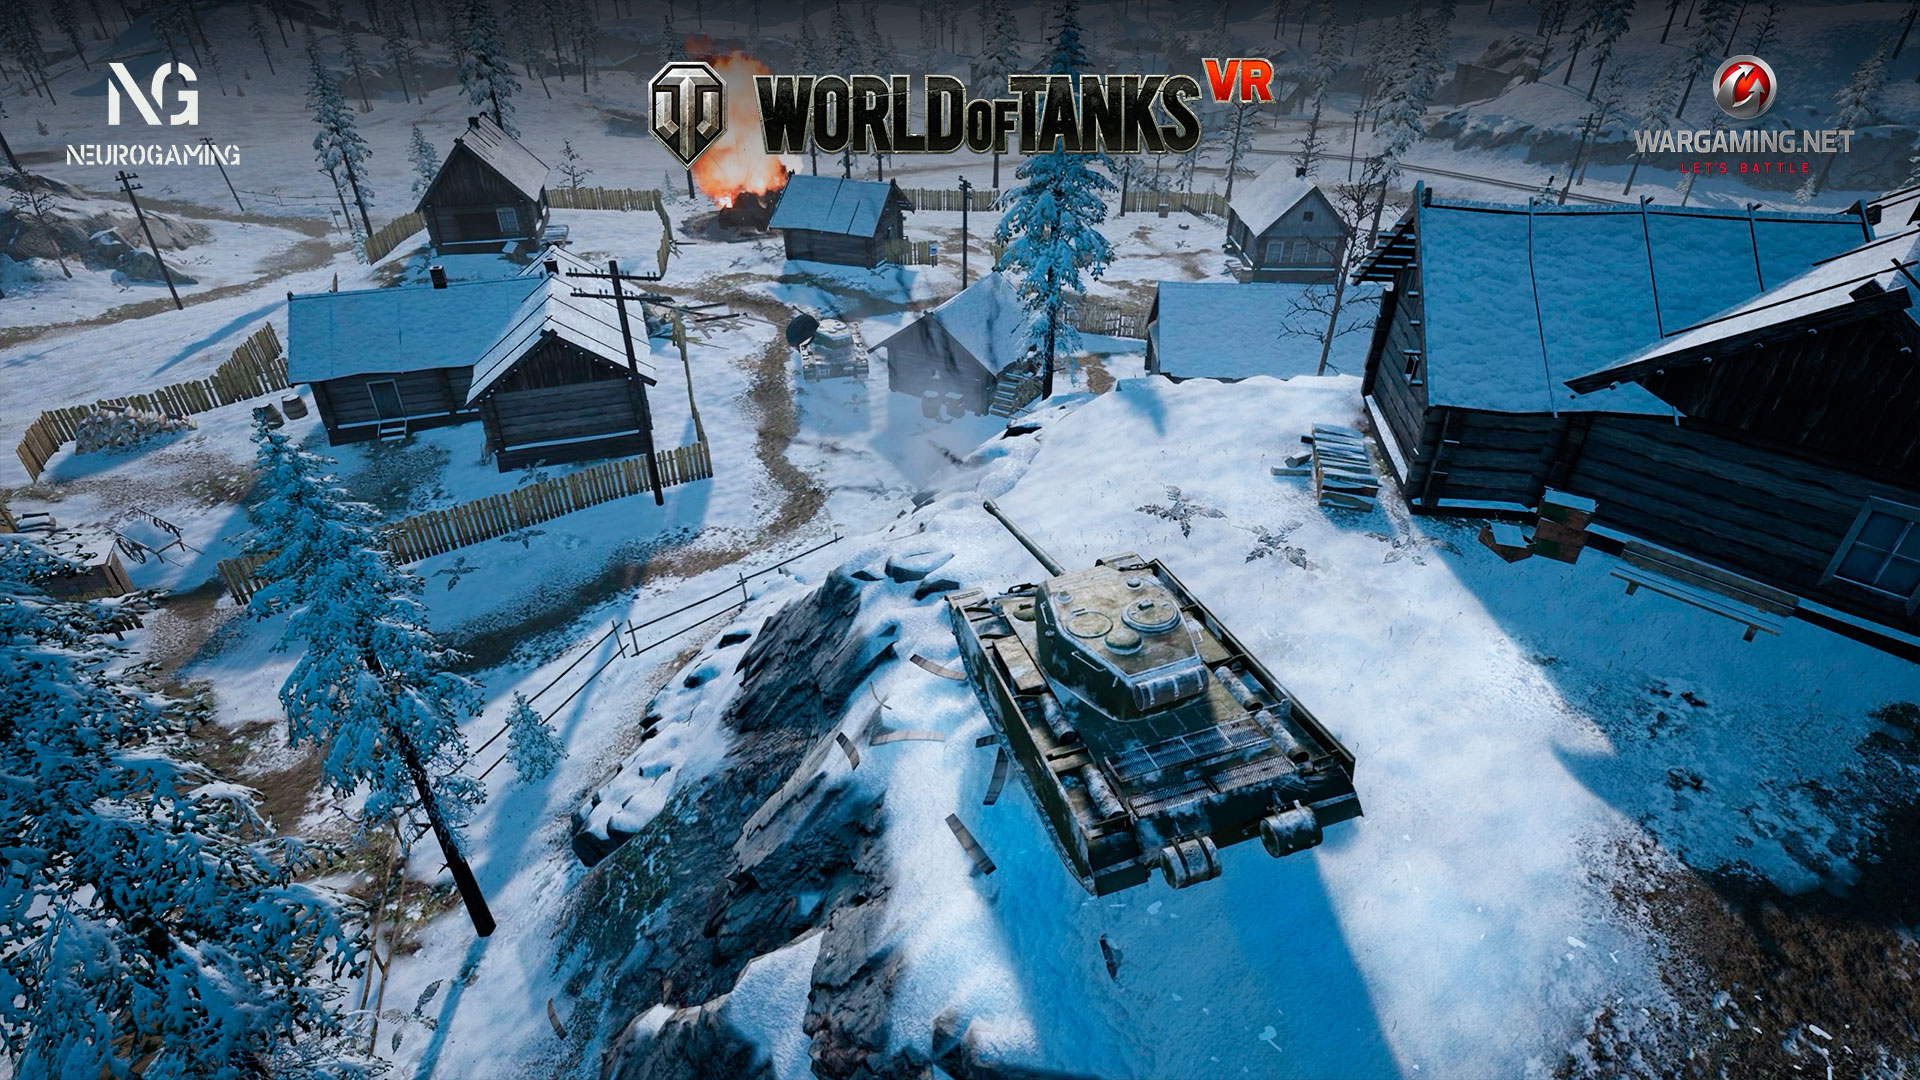 The daily bounce world of tanks warships and warplanes advertisements sciox Gallery